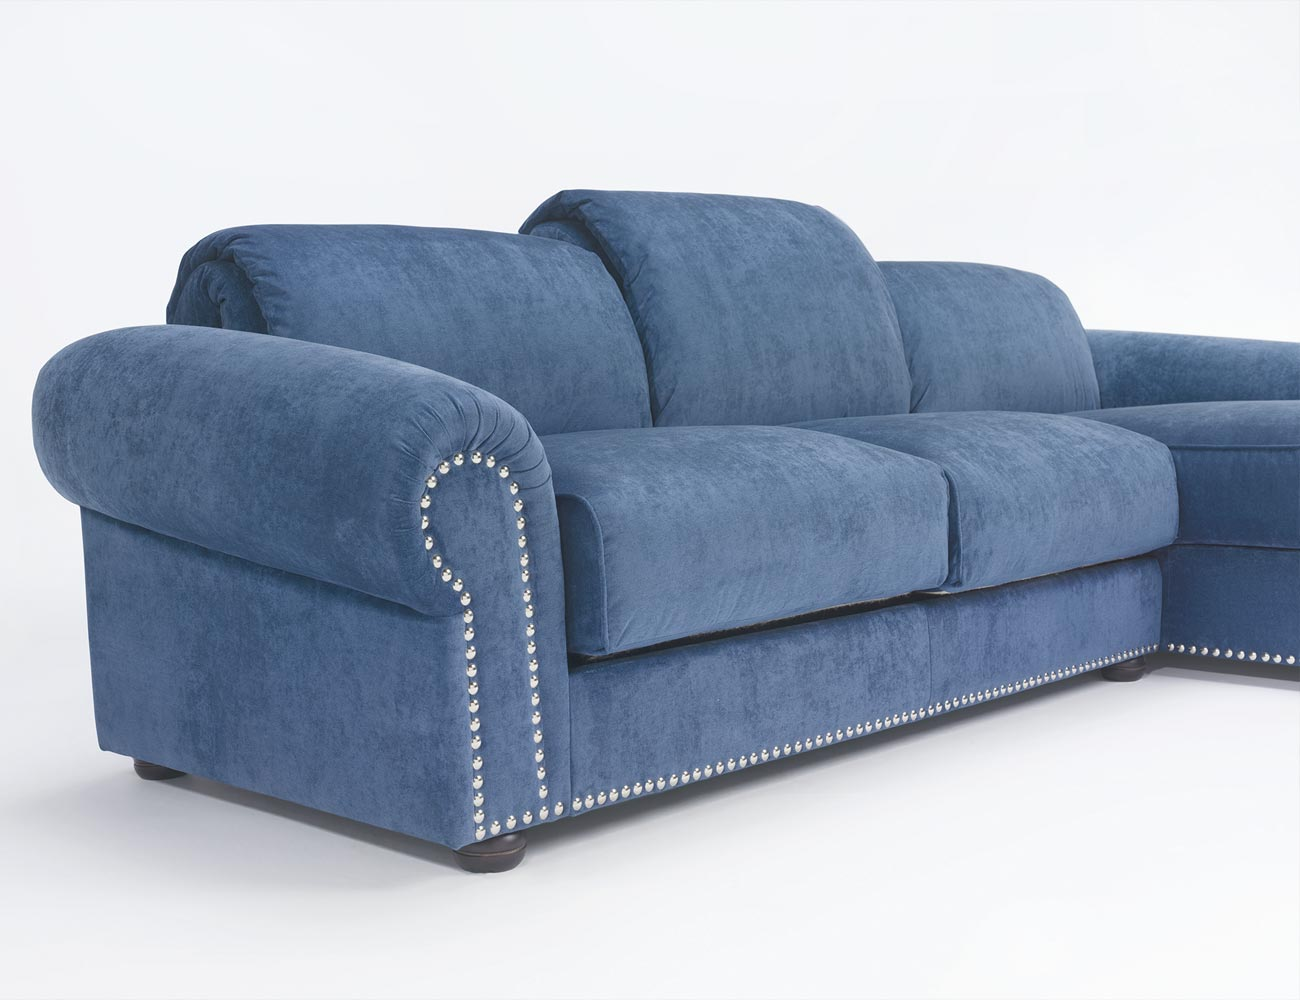 Sofa chaiselongue gran lujo decorativo azul 128